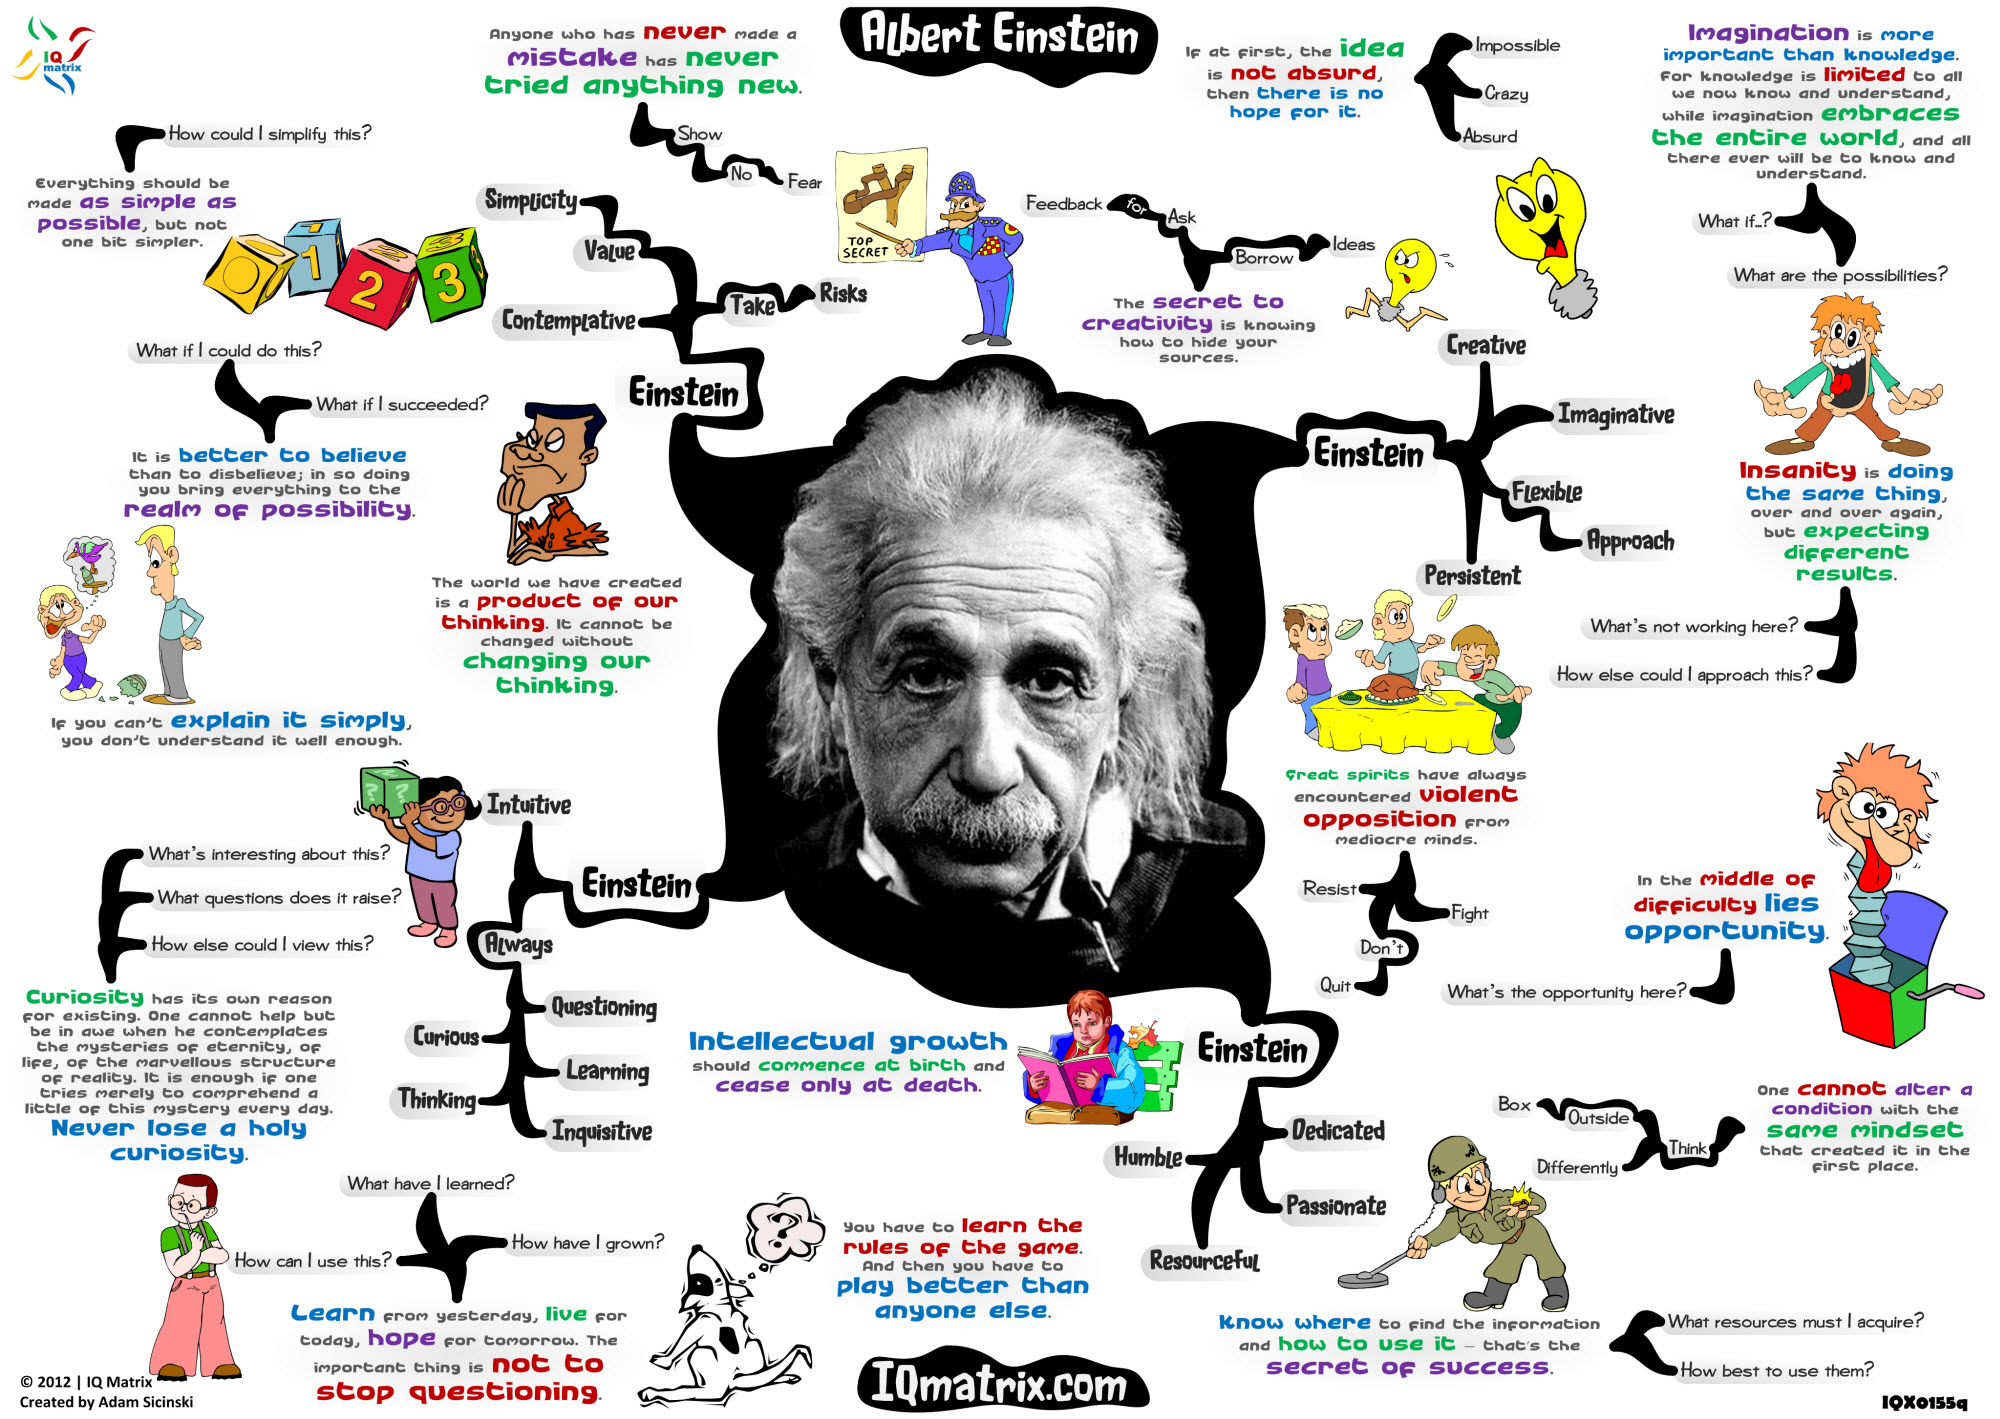 essay on imagination is better than knowledge